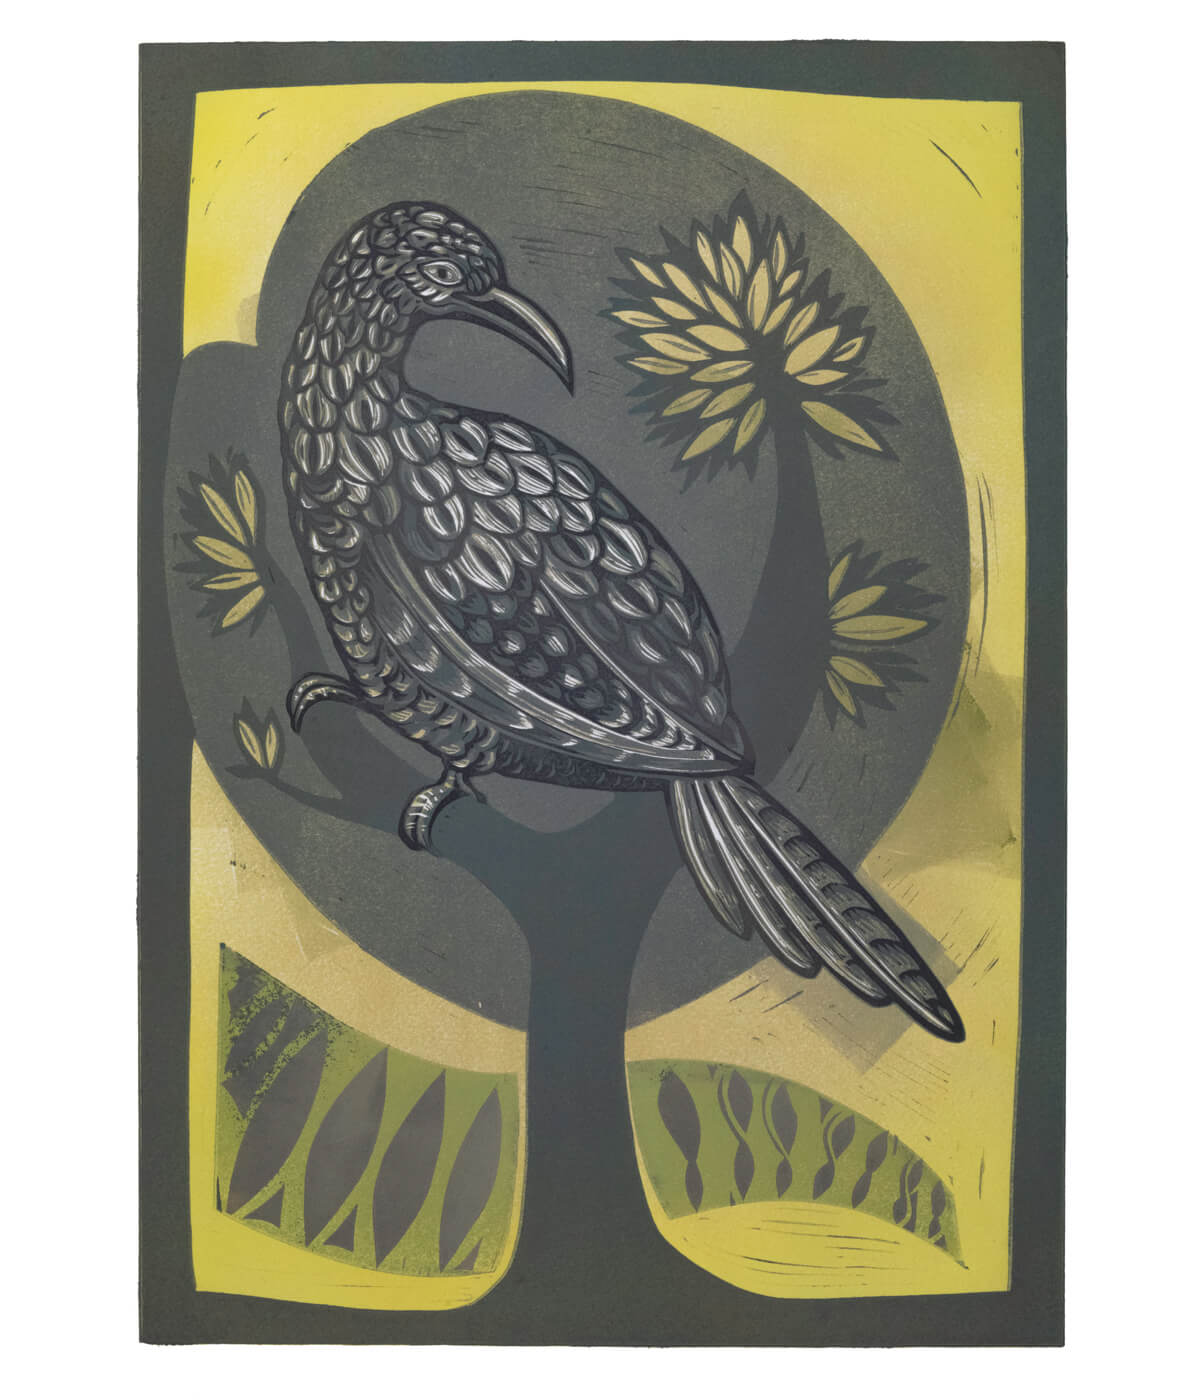 Mrs Griffiths' Cuckoo, a linocut print by Sarah Kirby